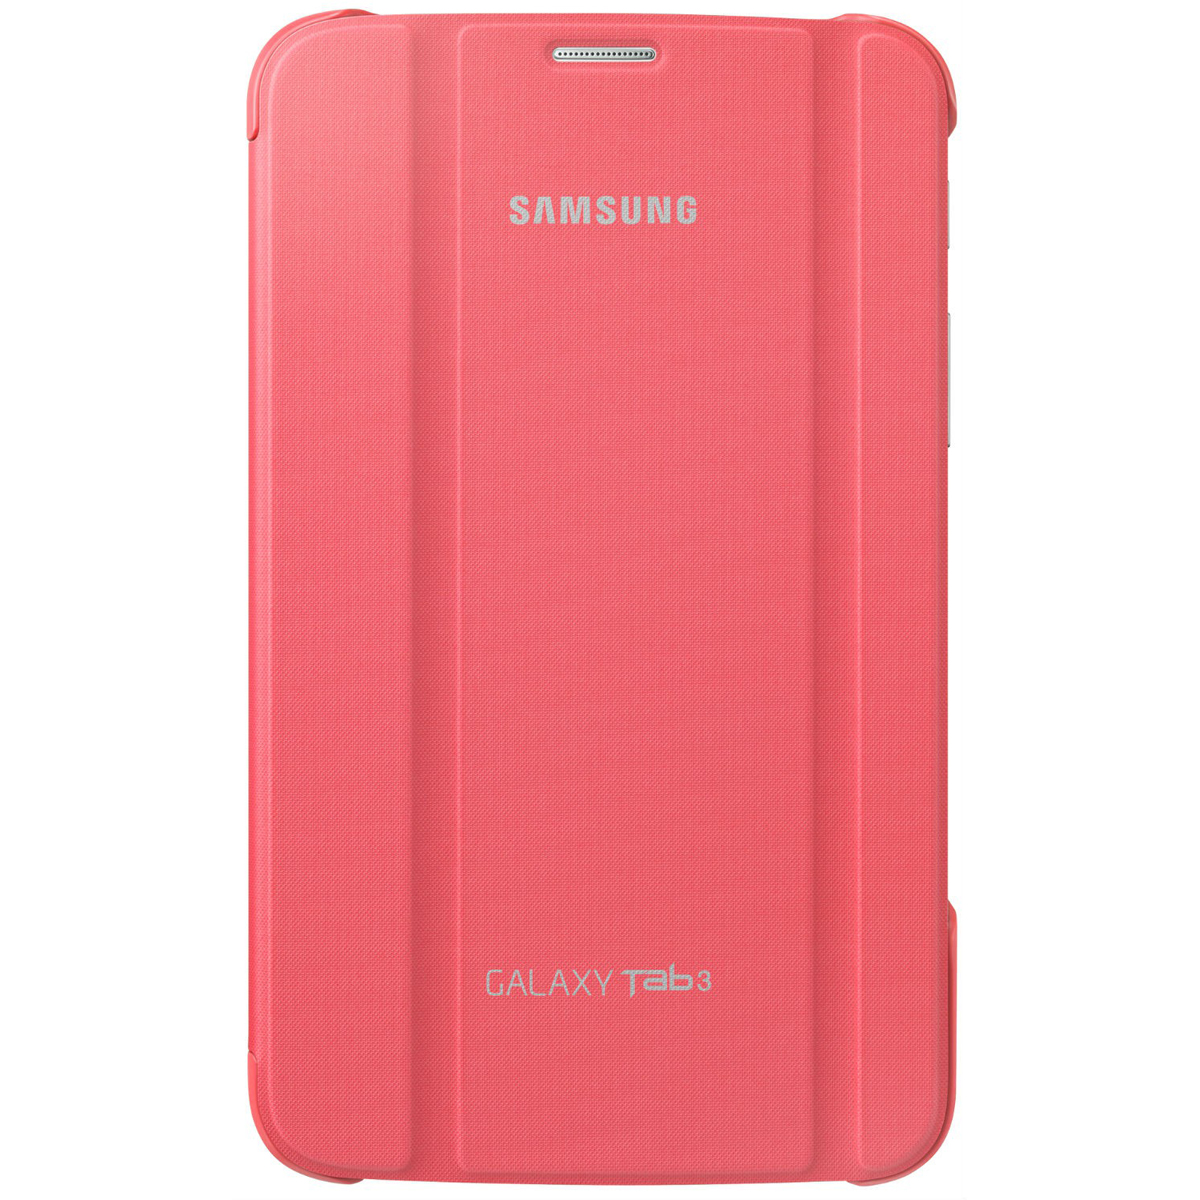 Support Clavier Ordinateur Samsung Book Cover Rose (pour Samsung Galaxy Tab 3 7.0